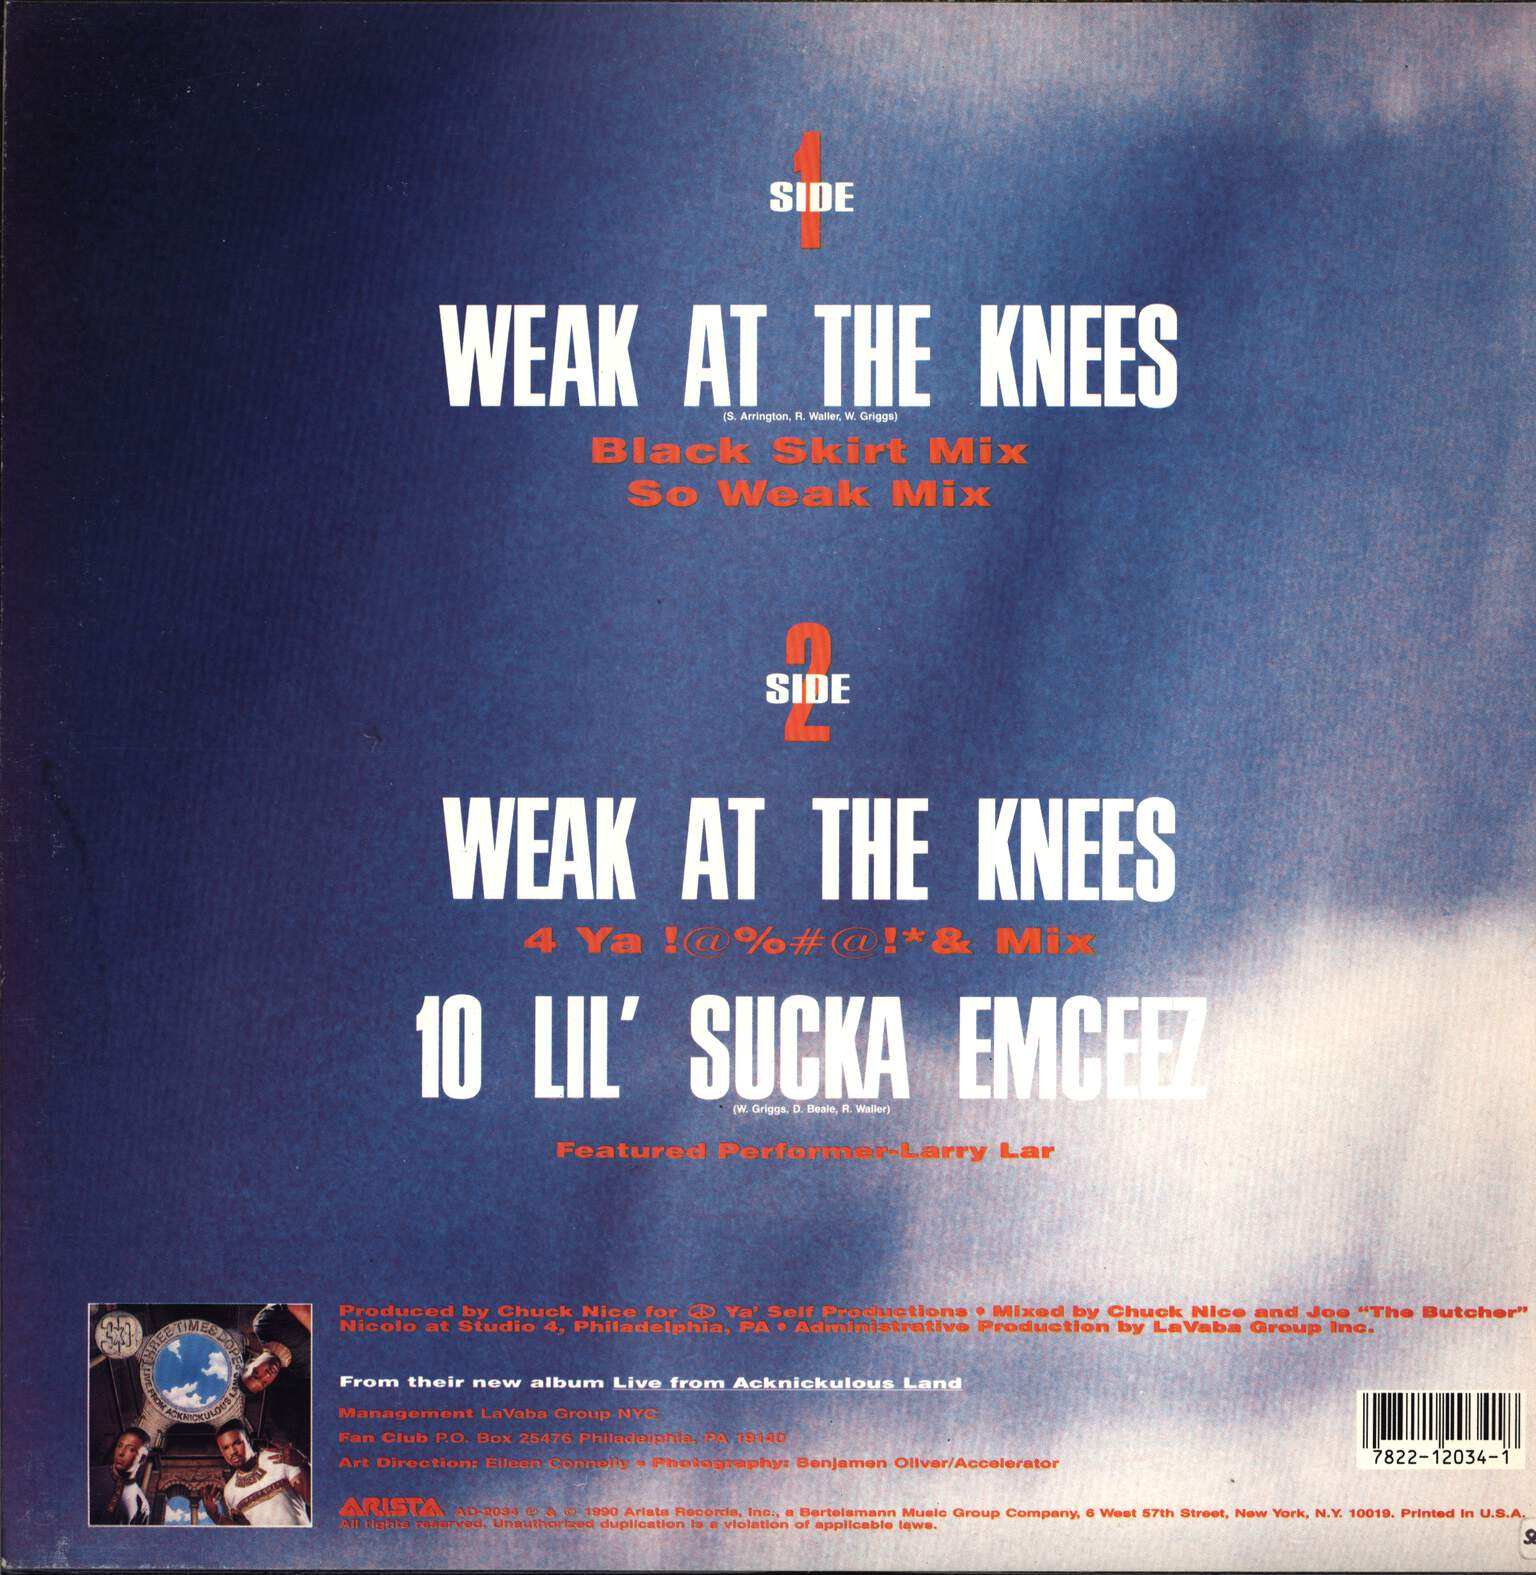 "Three Times Dope: Weak At The Knees, 12"" Maxi Single (Vinyl)"